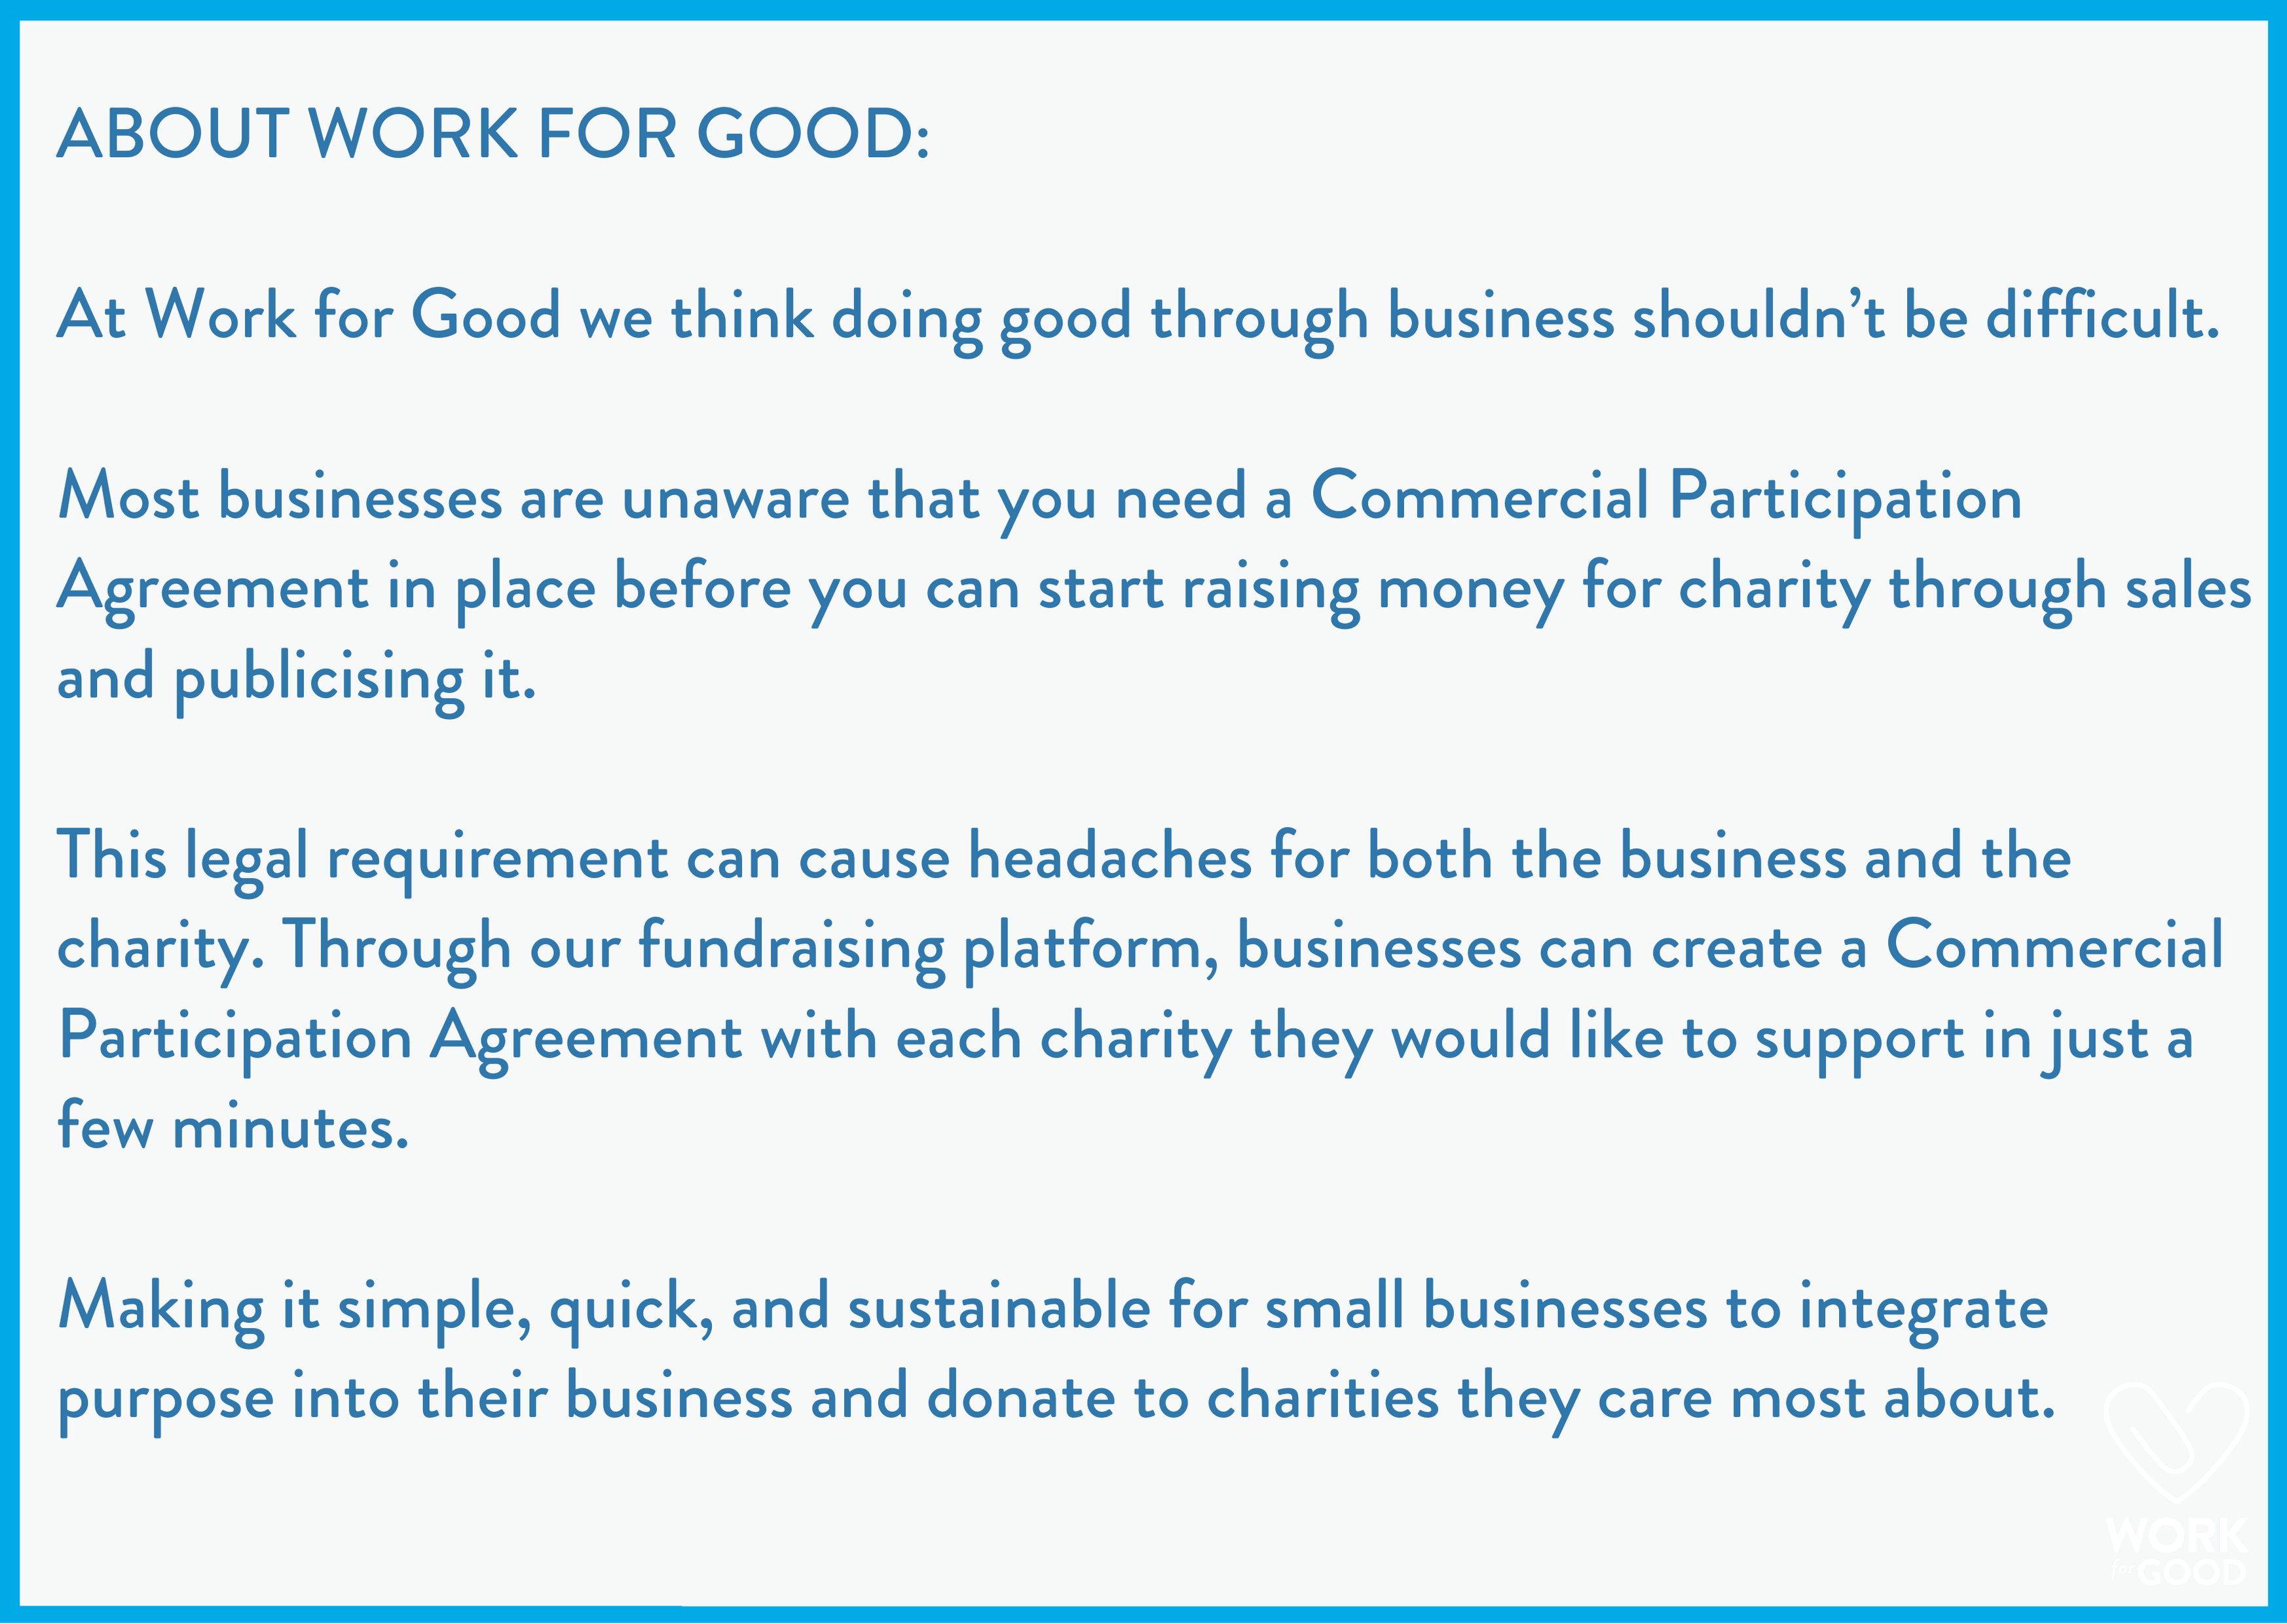 About Work for Good At Work for Good we think doing good through business shouldn't be difficult. Most businesses are unaware that you need a Commercial Participation Agreement in place before you can start rai (1).png